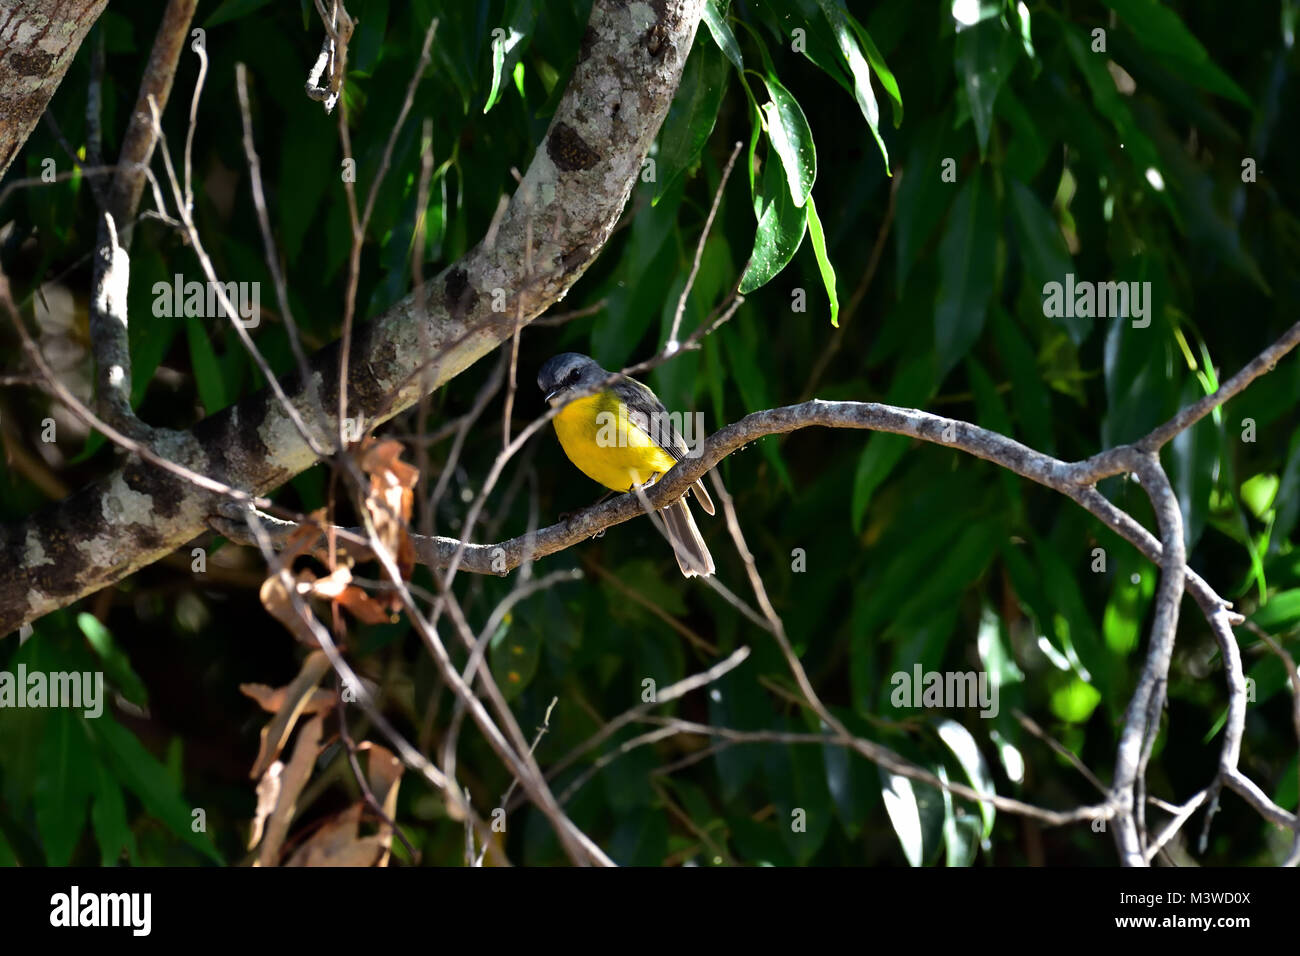 An Australian Eastern Yellow Robin resting on a Tree branch - Stock Image